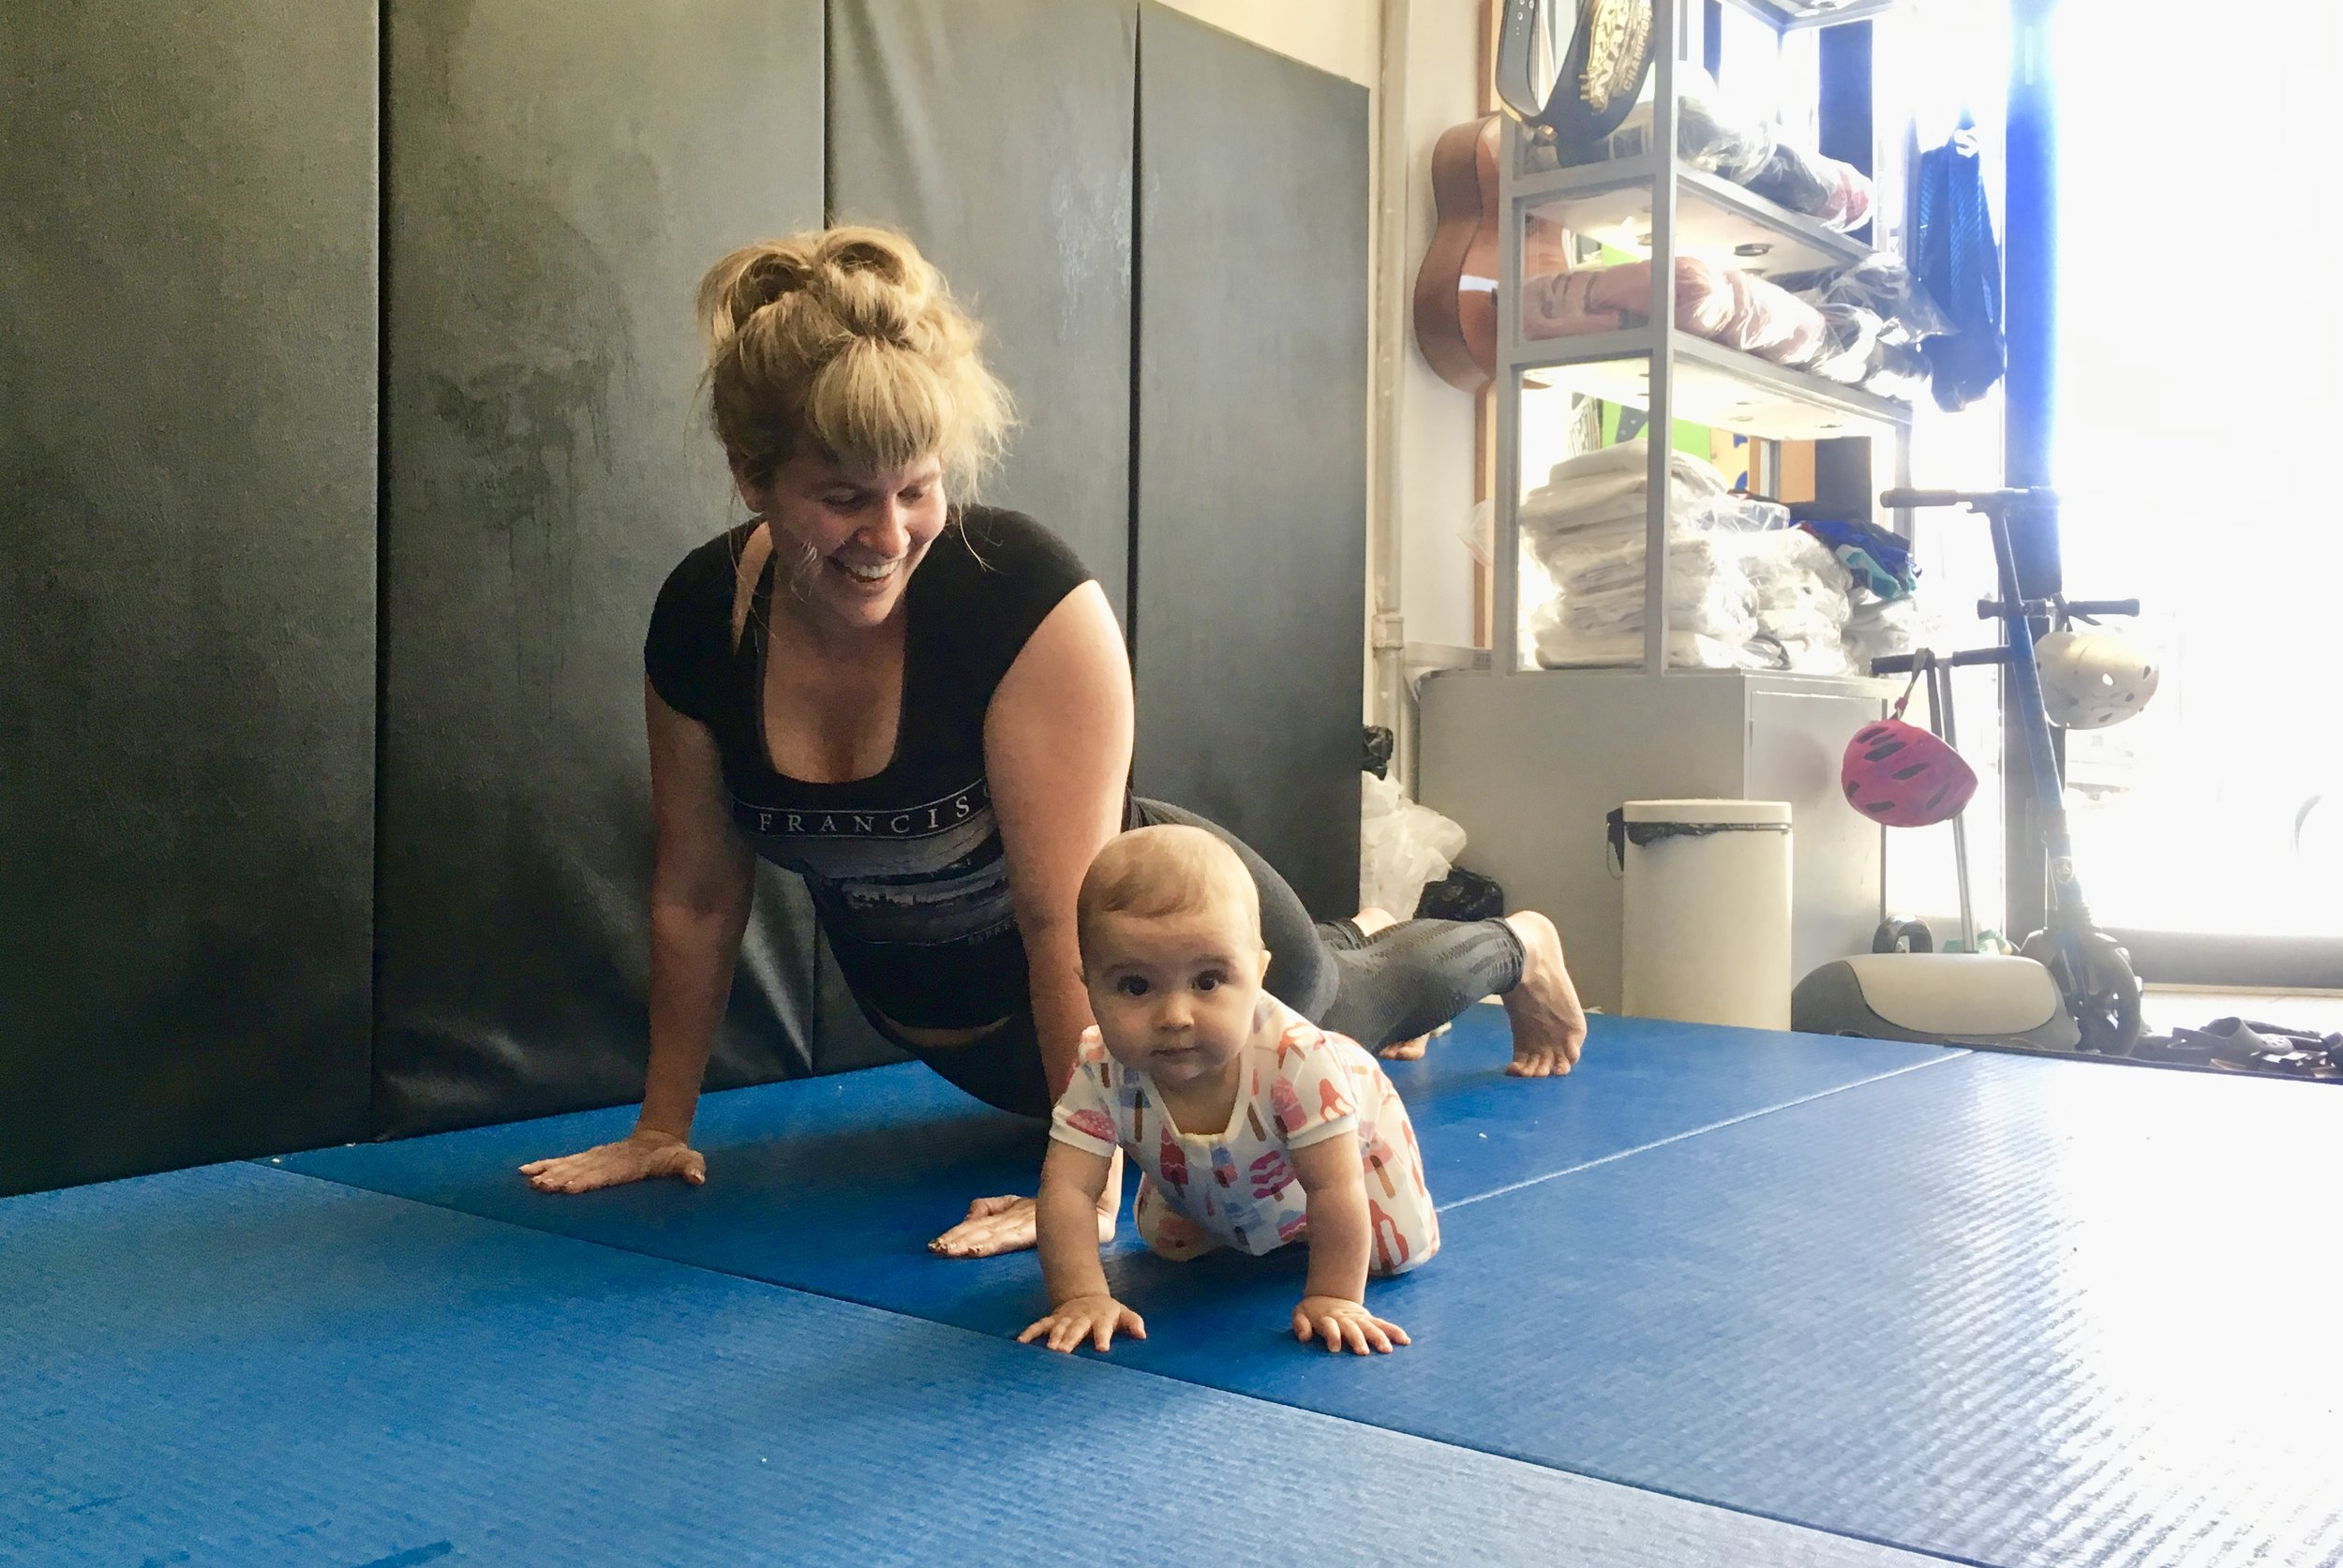 - Not only did Julia help me get back into shape after having my sweet baby. She was so encouraging and helped me keep in a positive mindset. She was also so loving to my daughter when I brought her to sessions with me.-Célia